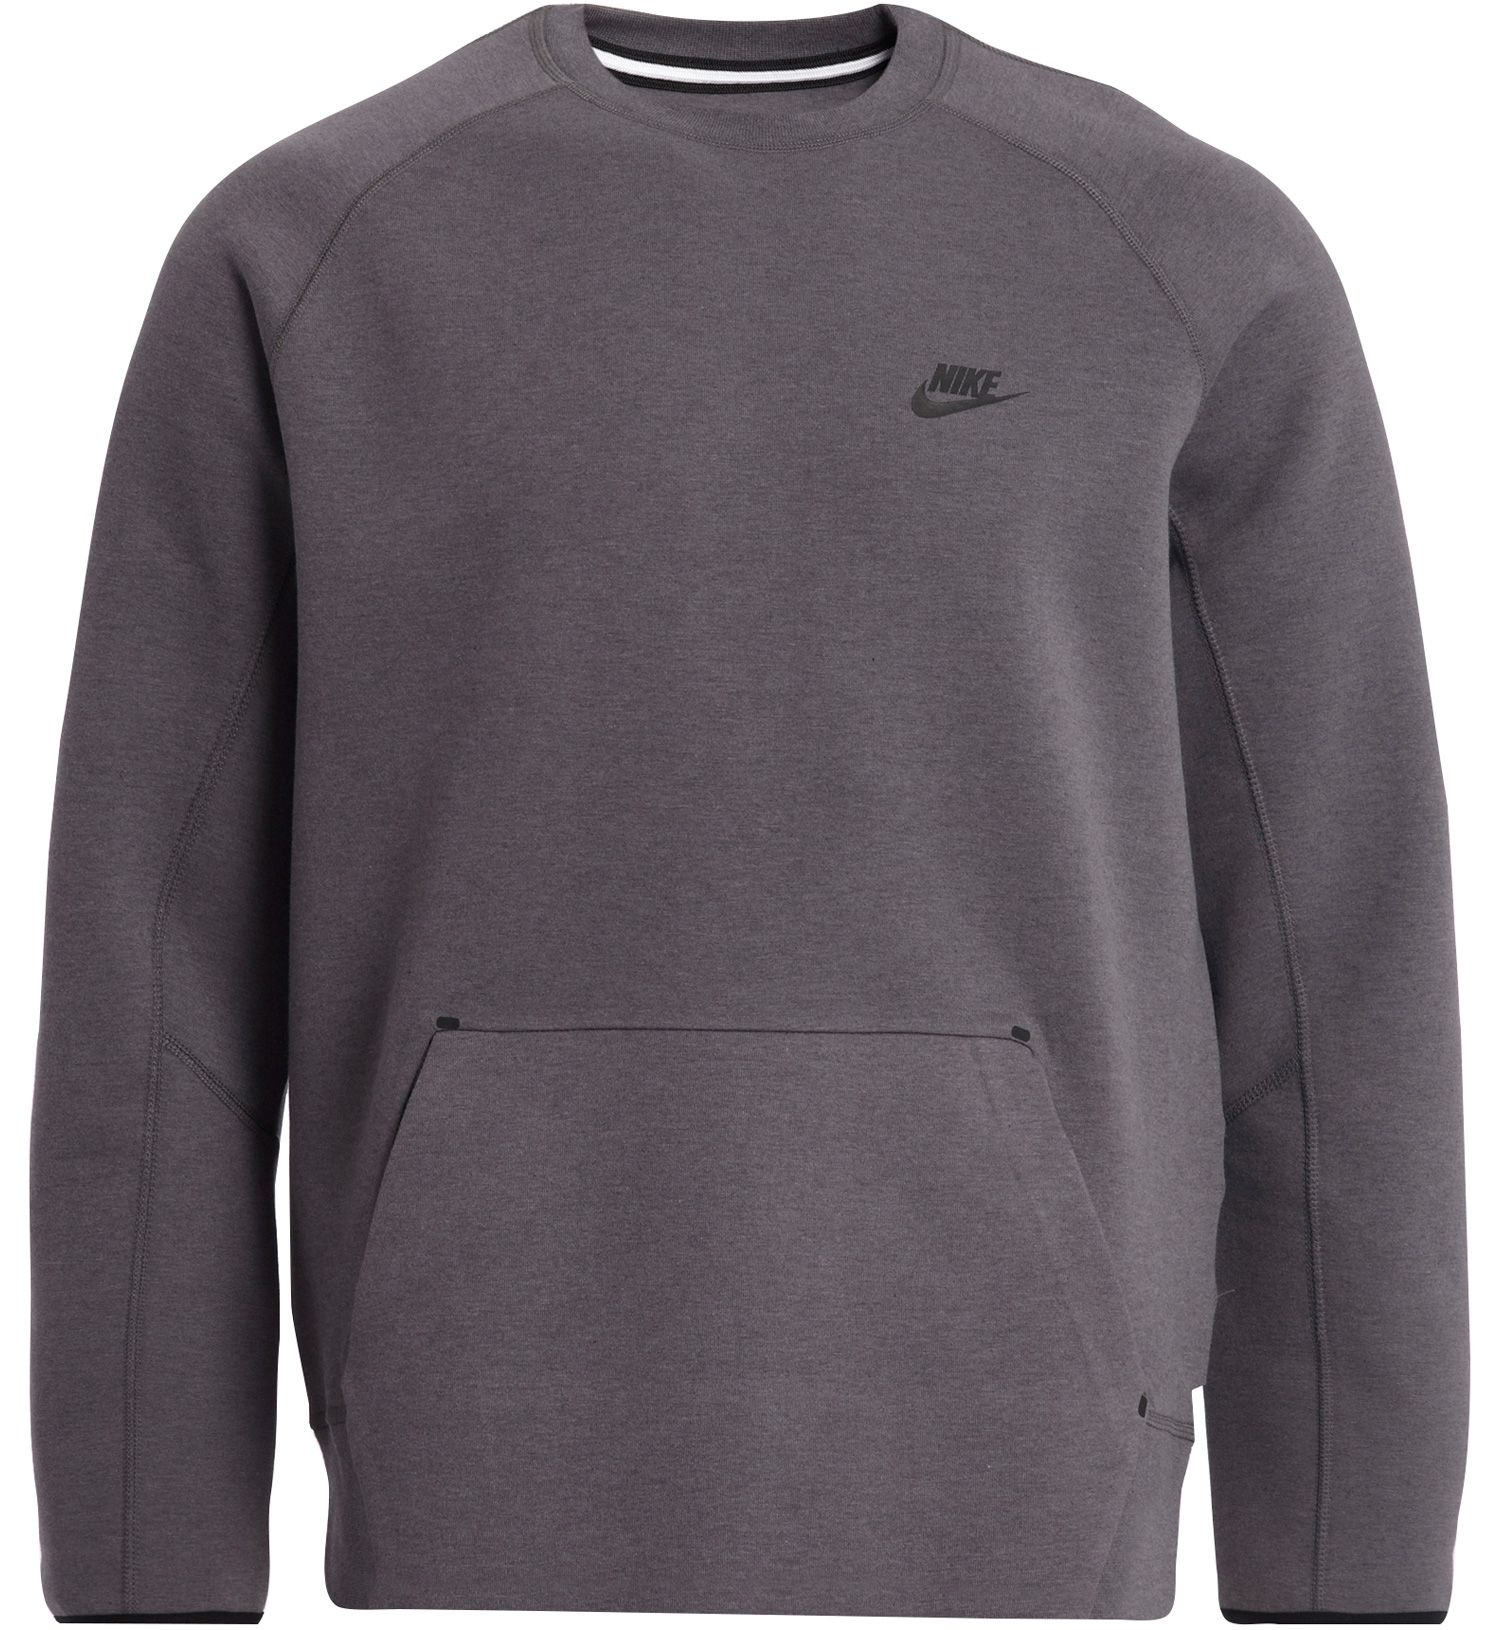 Shop Tech Nike Fx6ooq Gris E Sweat Crew 1mm Citadium Null Pull N8nw0m